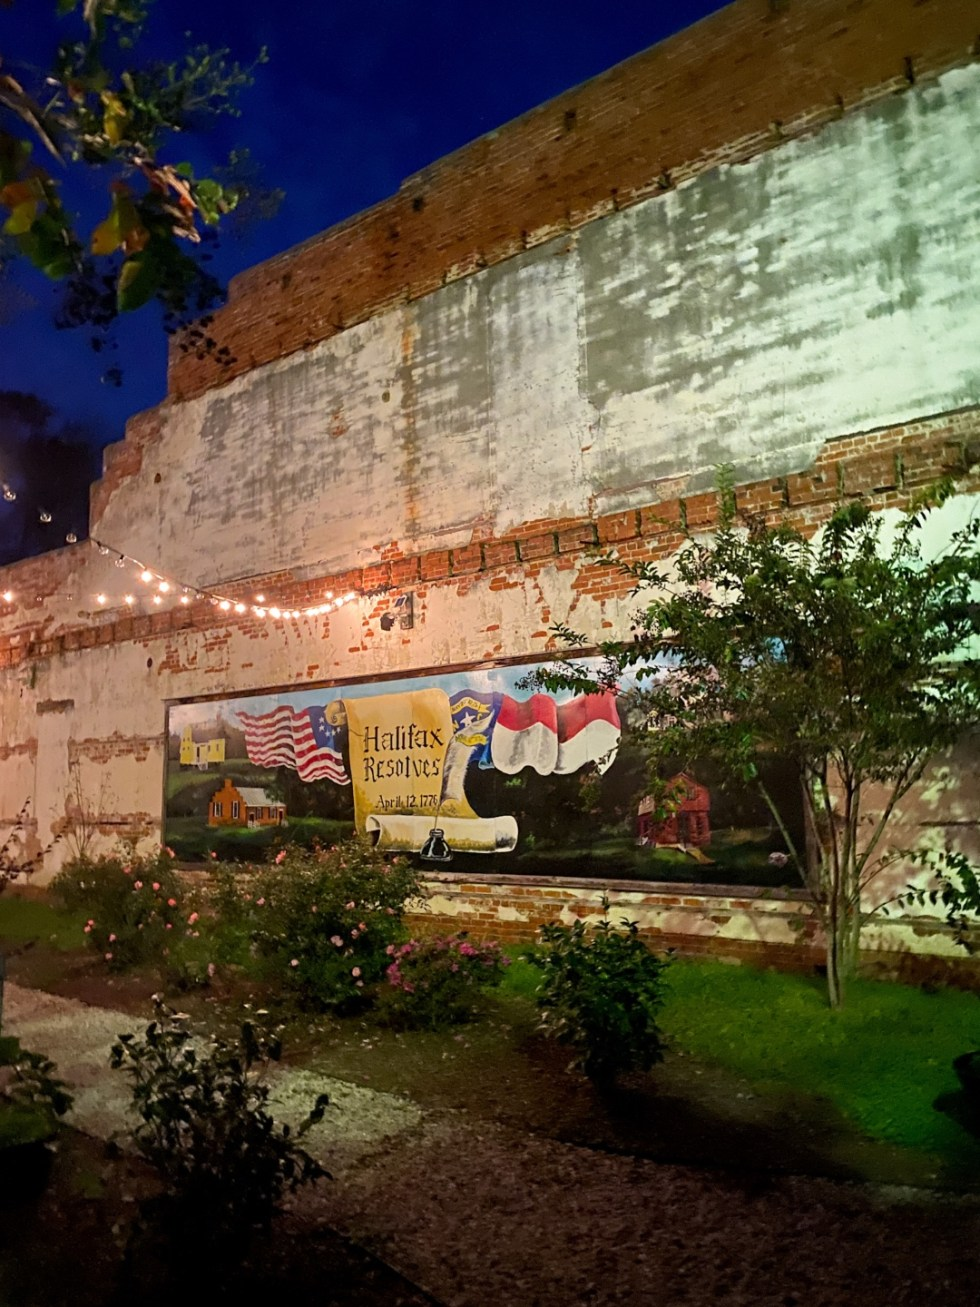 An Update on My North Carolina 100 County Tour - I'm Fixin' To - @imfixintoblog | Things to do in North Carolina by popular NC travel blog, I'm Fixin' To: image of a Halifax wall mural.